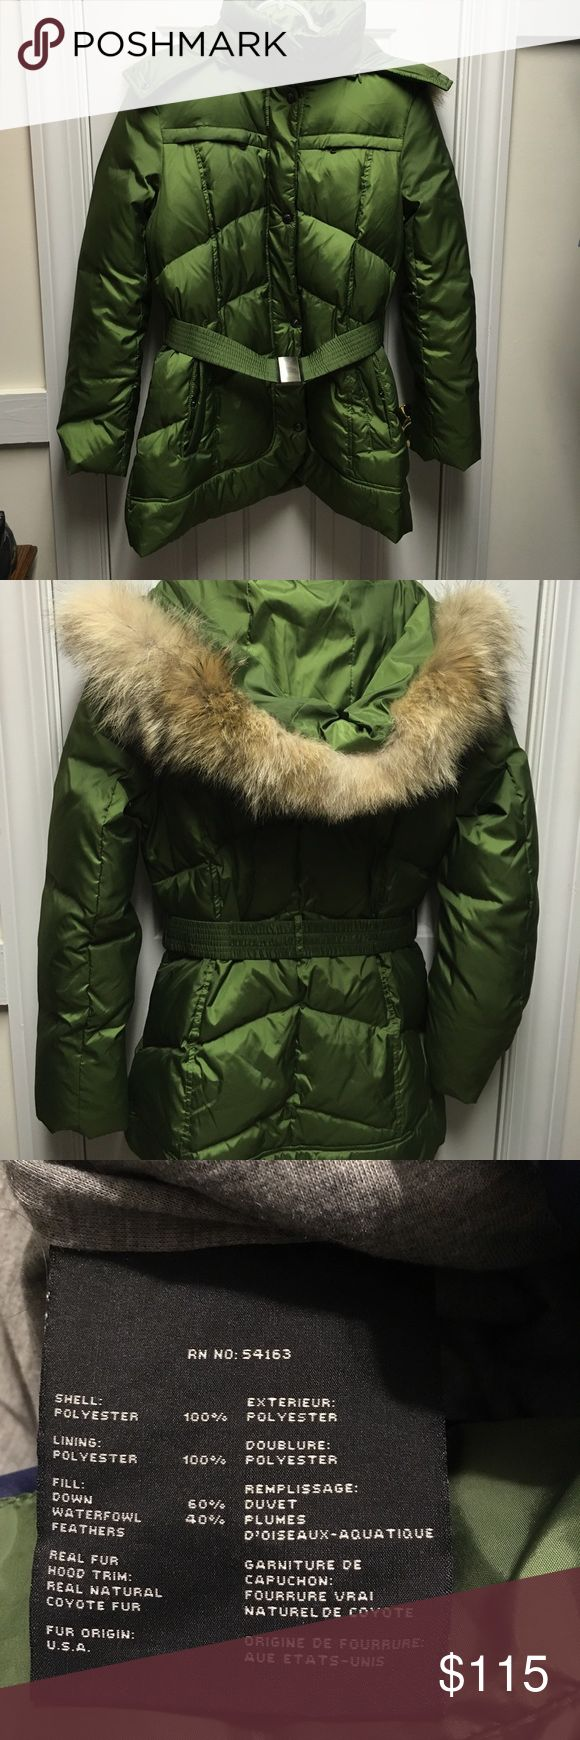 Marc New York Andrew Marc jacket Marc New York Andrew Marc green down jacket with detachable hood! Andrew Marc Jackets & Coats